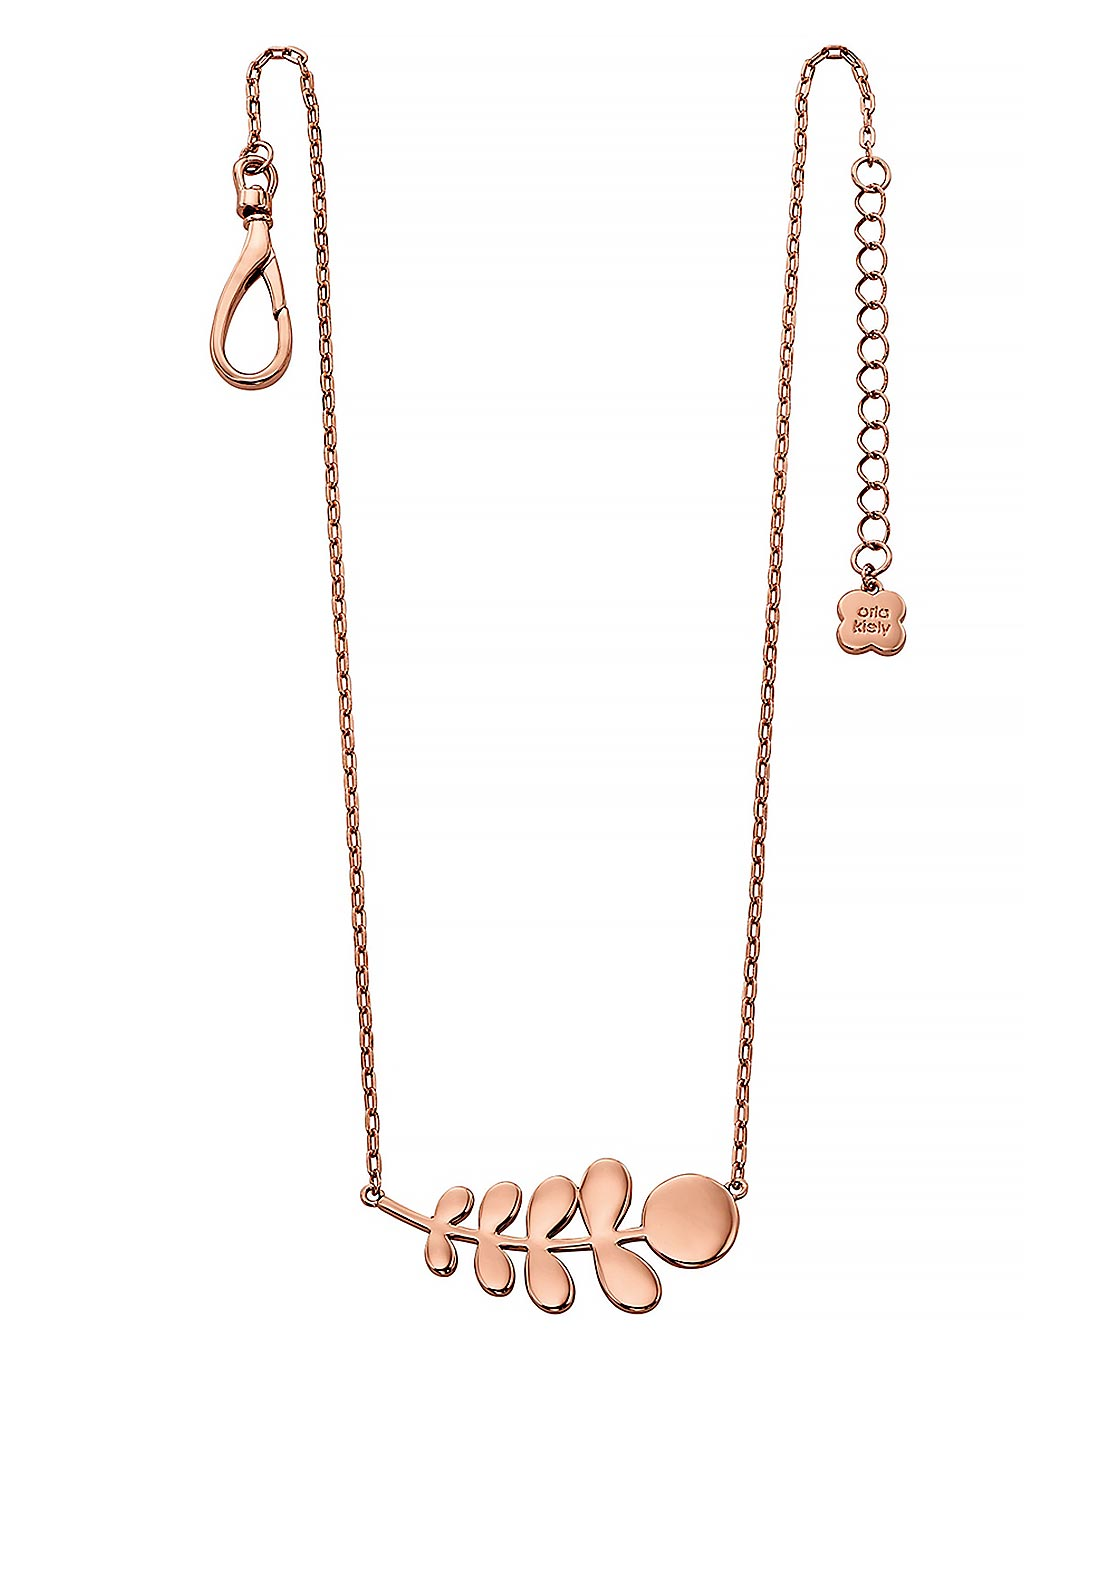 Orla Kiely Buddy Stem Pattern Necklace, Rose Gold